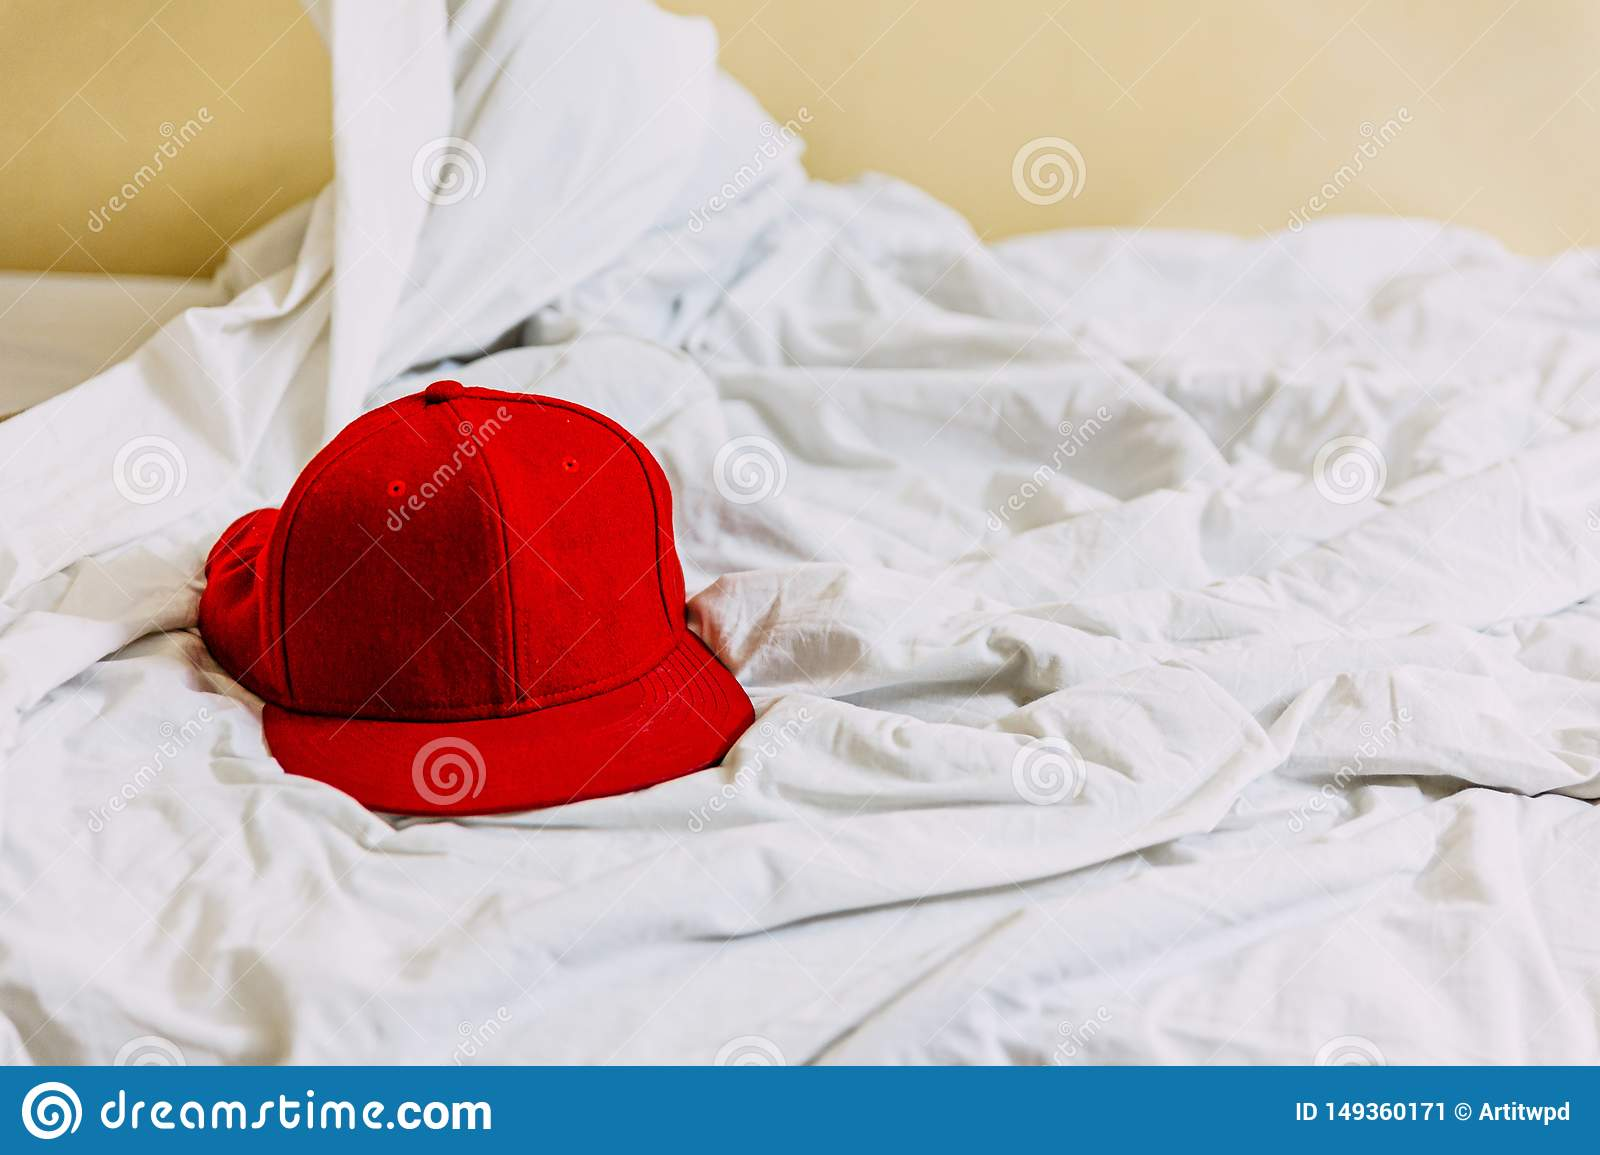 Red hat on the left side over white blanket on the bed with yellow background